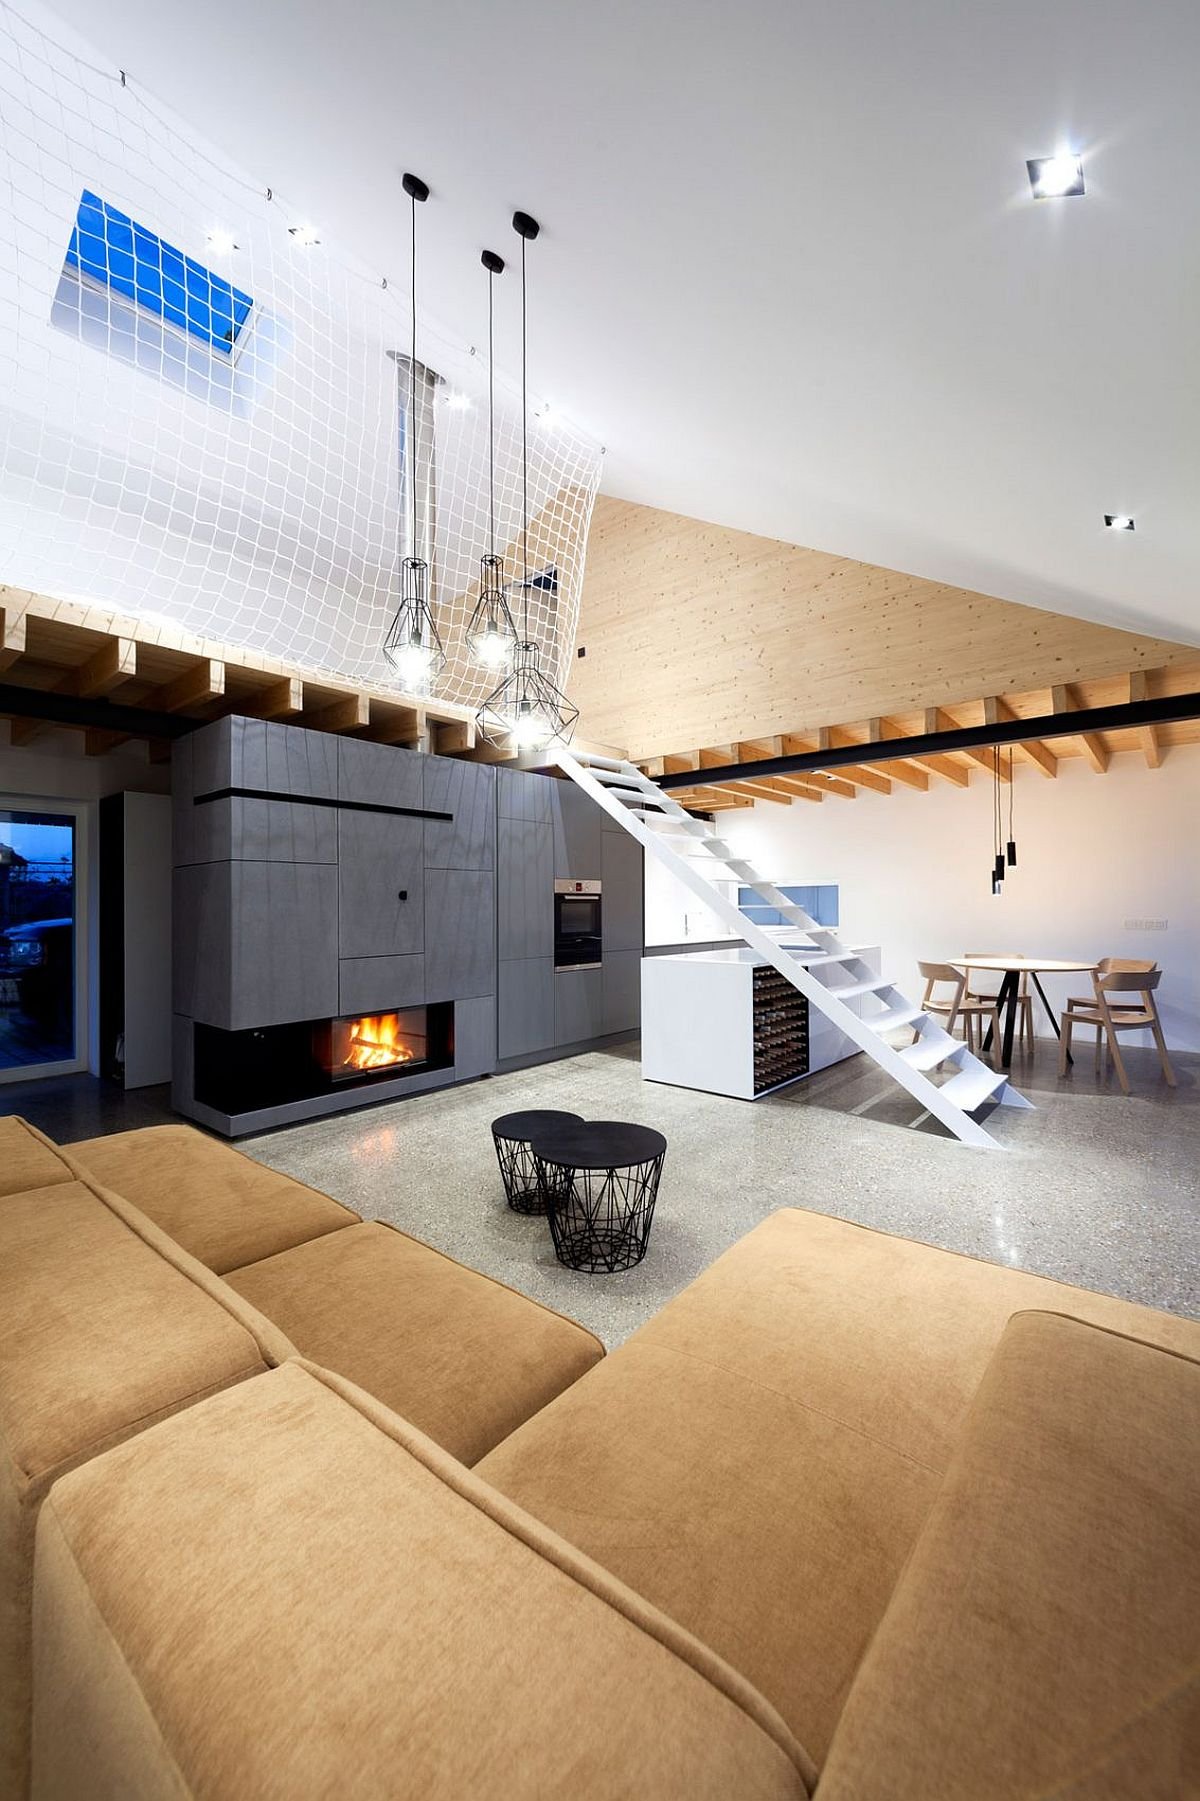 Loft style interior of the Slovakian home with mezzanine level